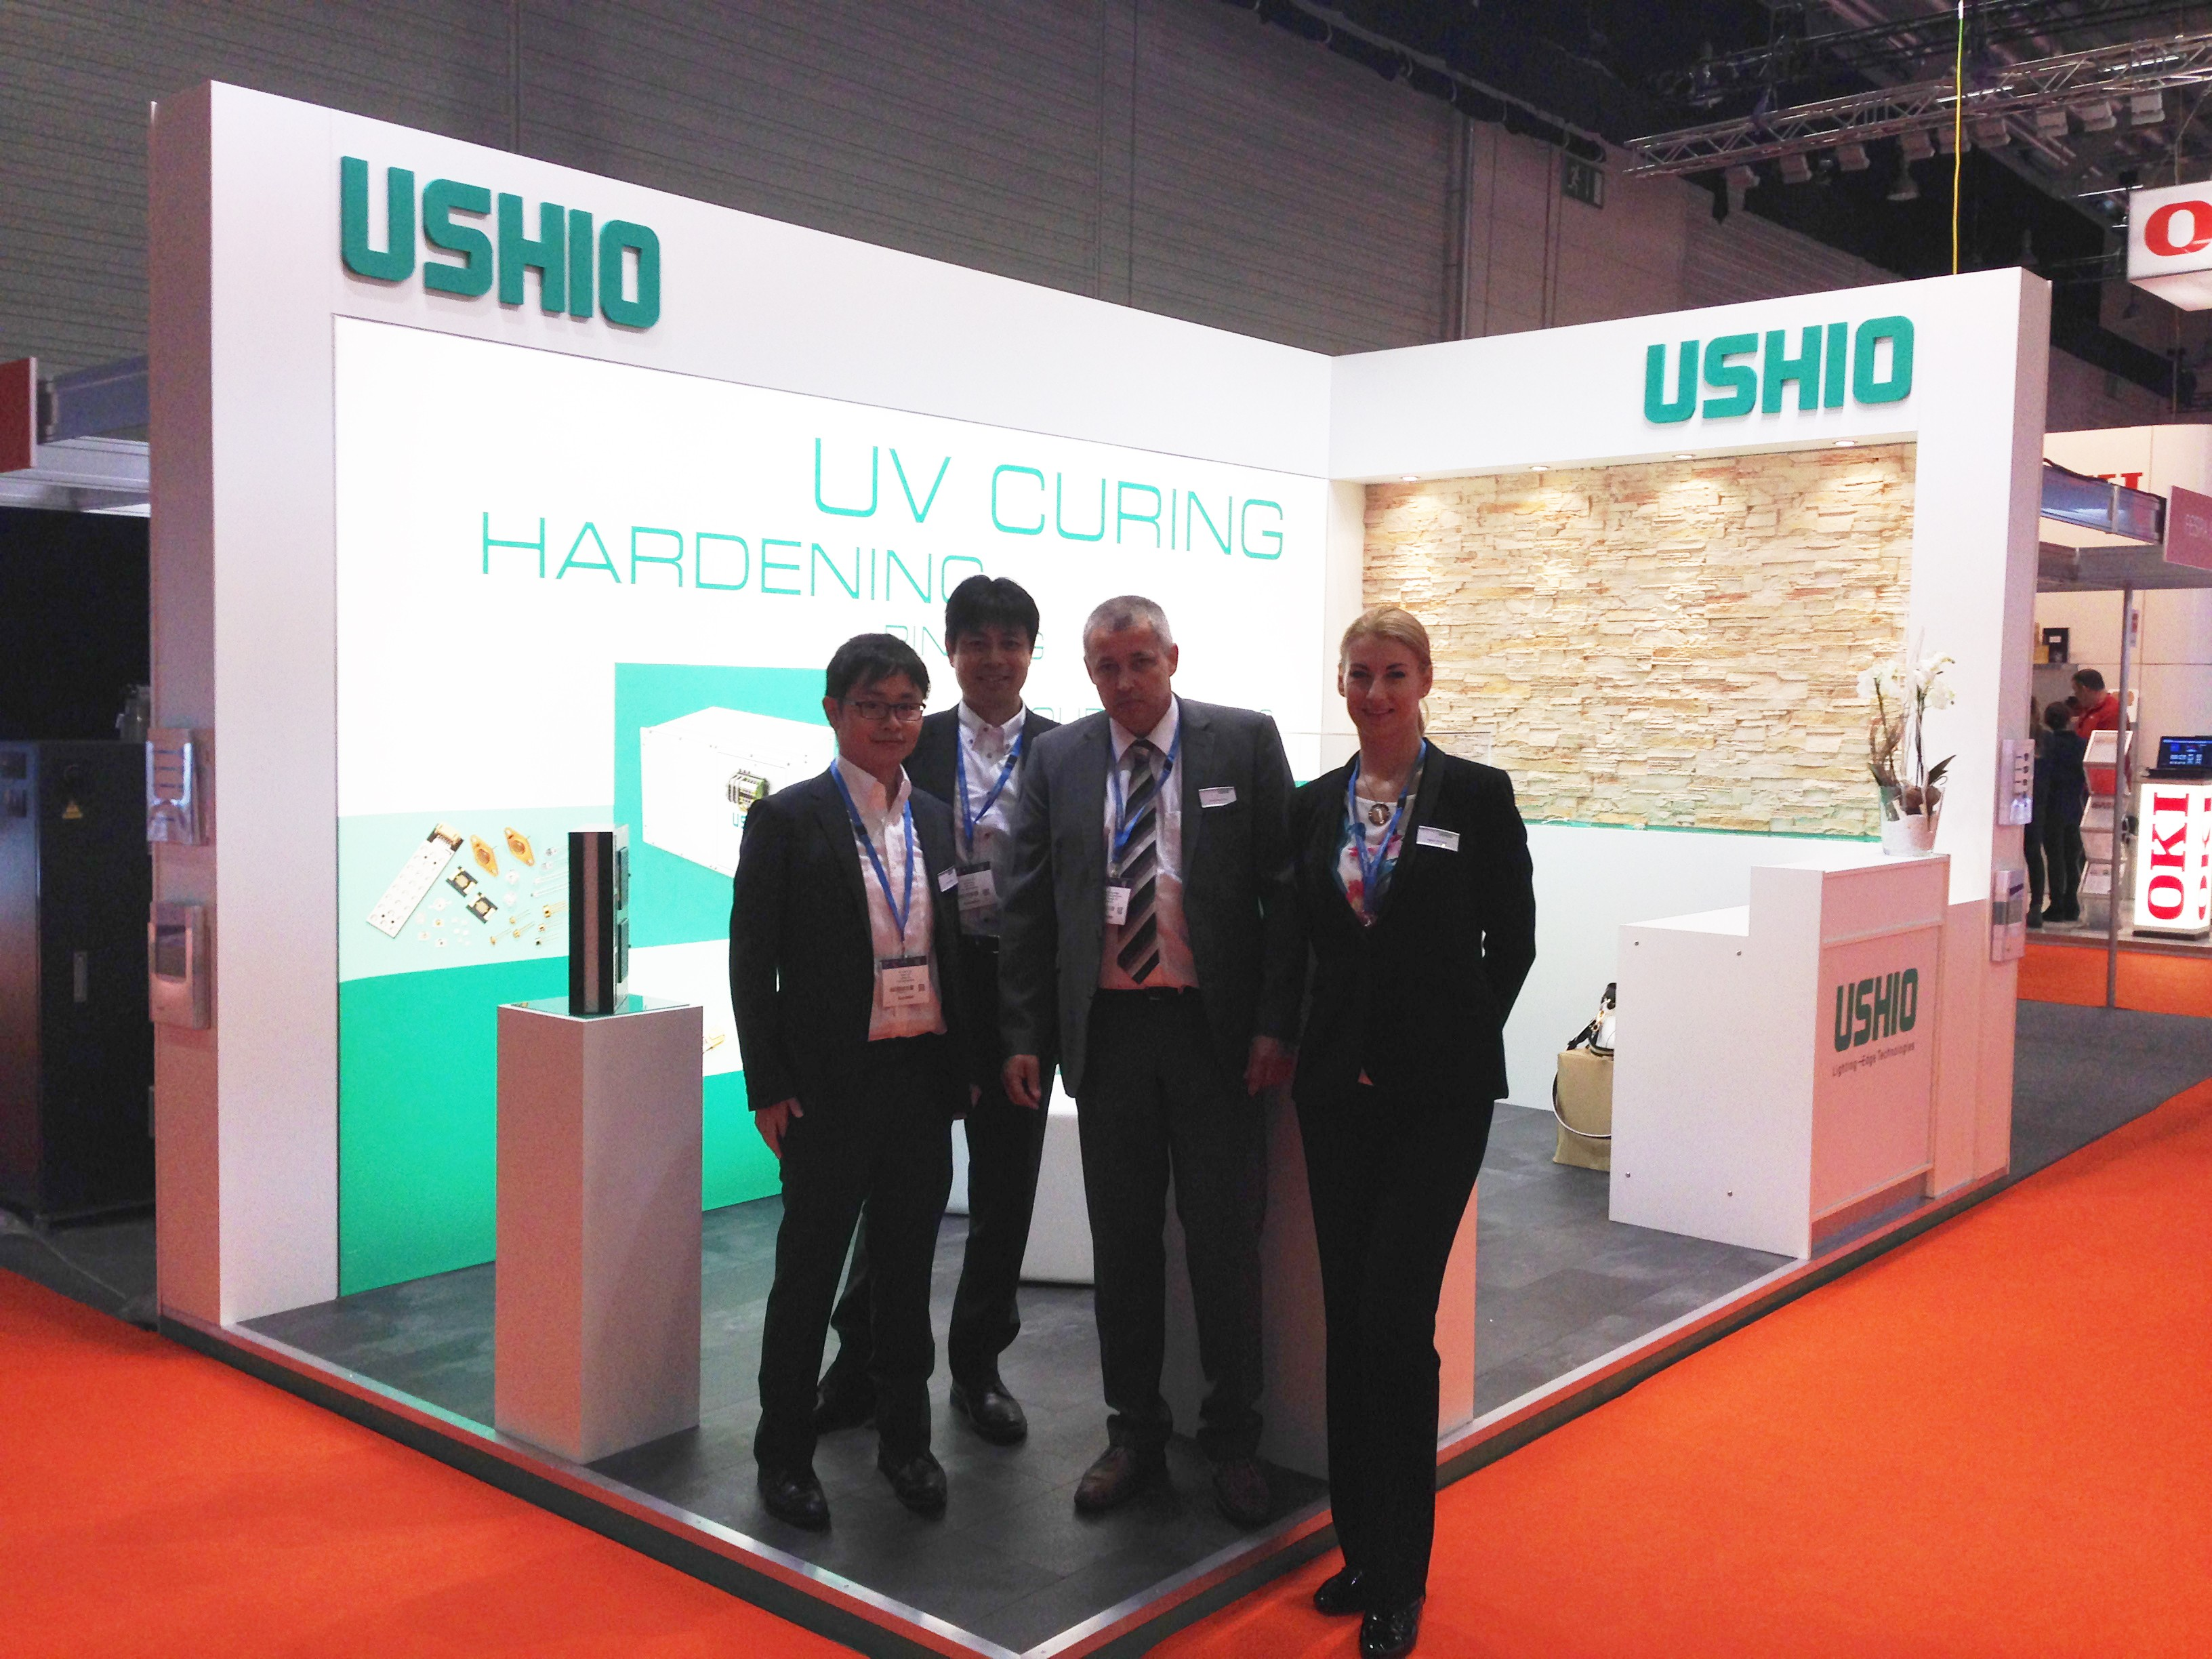 USHIO present on the FESPA in Cologne Germany